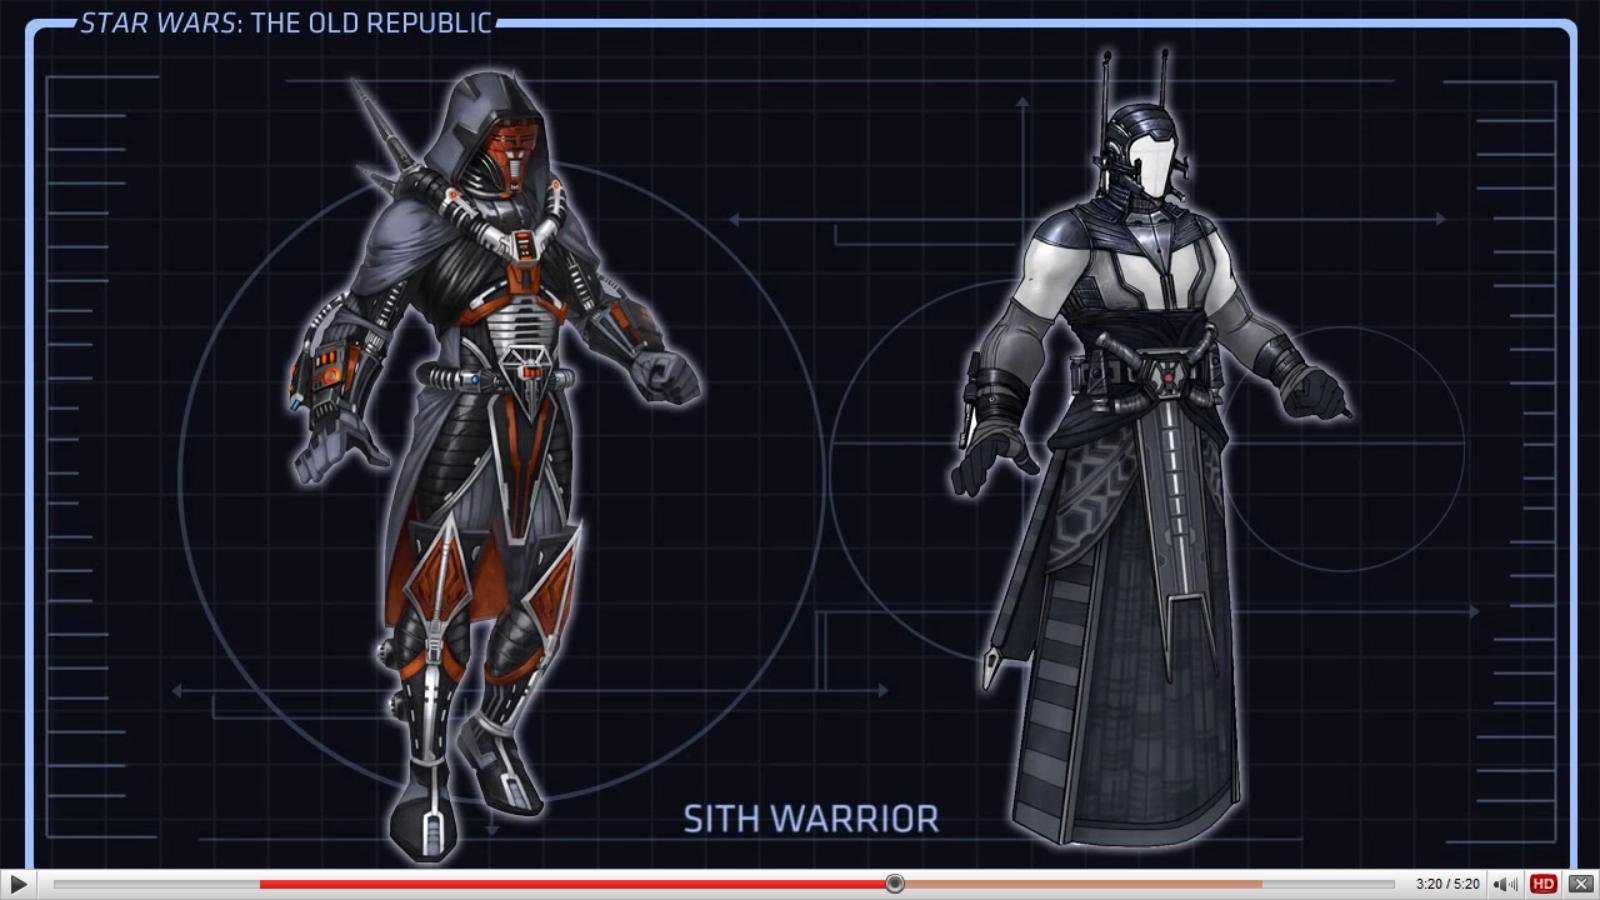 Sith warrior armor